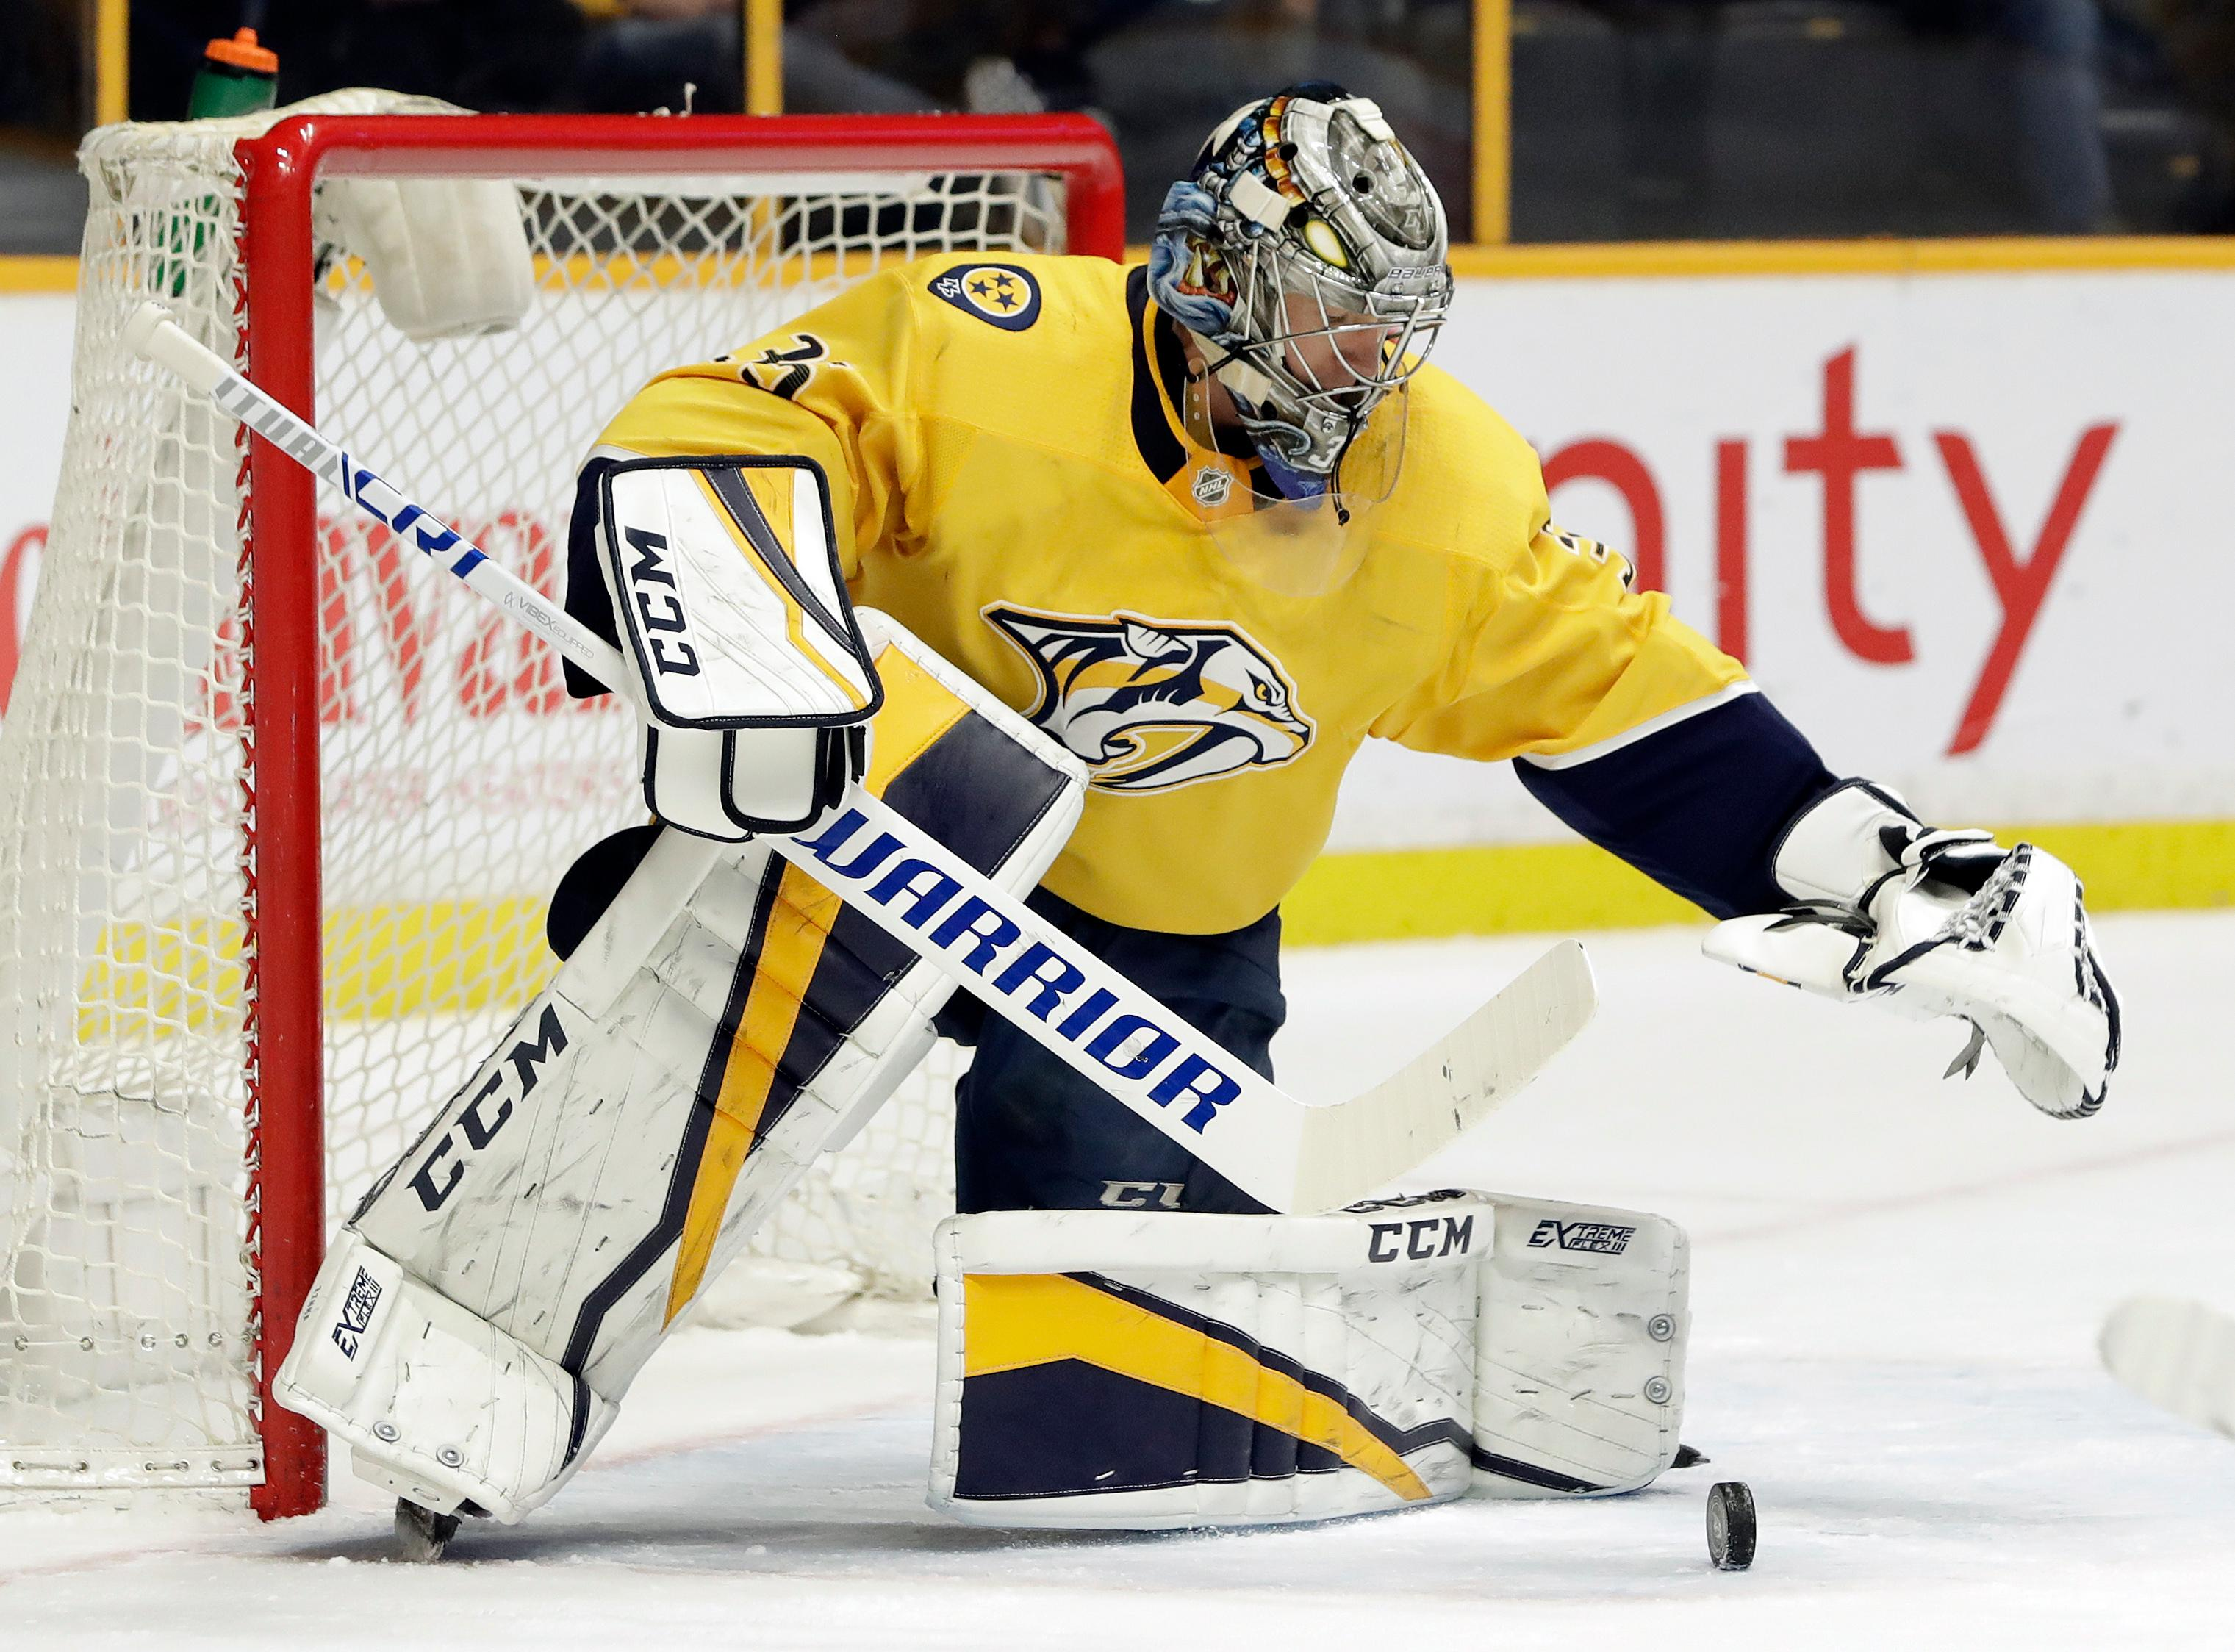 Nashville Predators goalie Pekka Rinne, of Finland, blocks a shot against the Dallas Stars in the first period of an NHL hockey game Tuesday, March 6, 2018, in Nashville, Tenn. (AP Photo/Mark Humphrey)